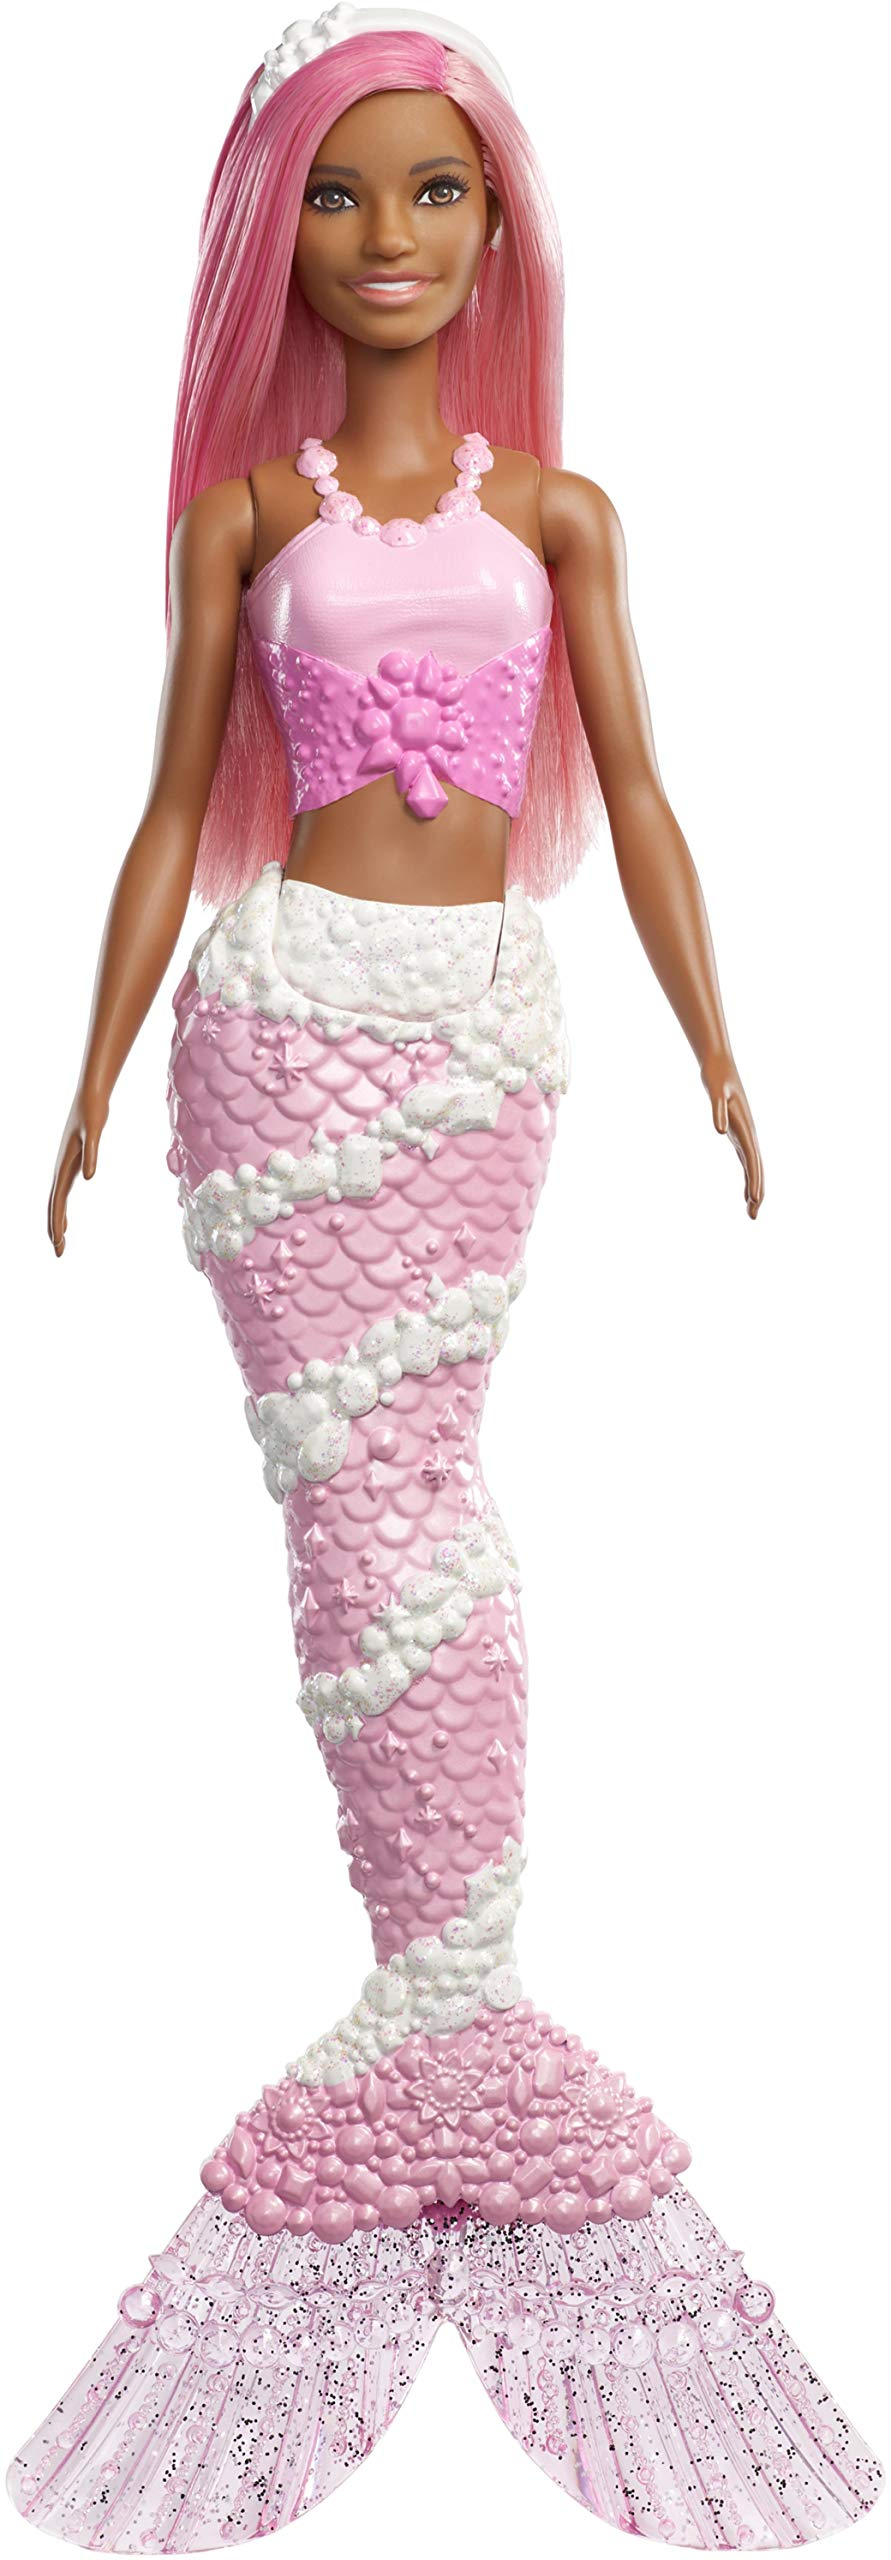 Barbie Dreamtopia Mermaid Doll, Approx. 12-Inch, Jewel-Inspired Tail, Pink Hair, for 3 to 7 Year Olds